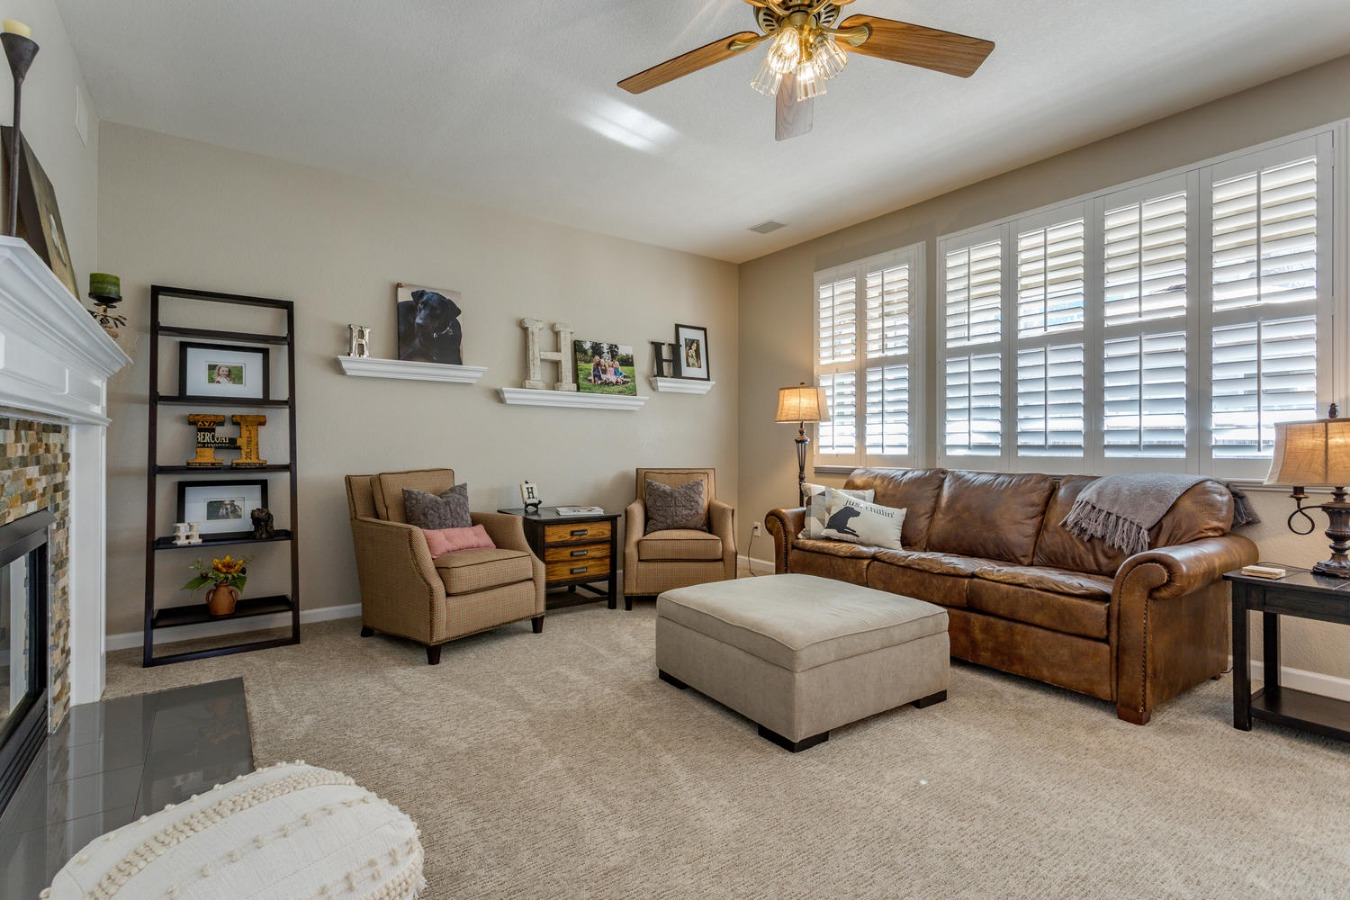 Gas Fireplace & Plantation Shutters Here, Too!